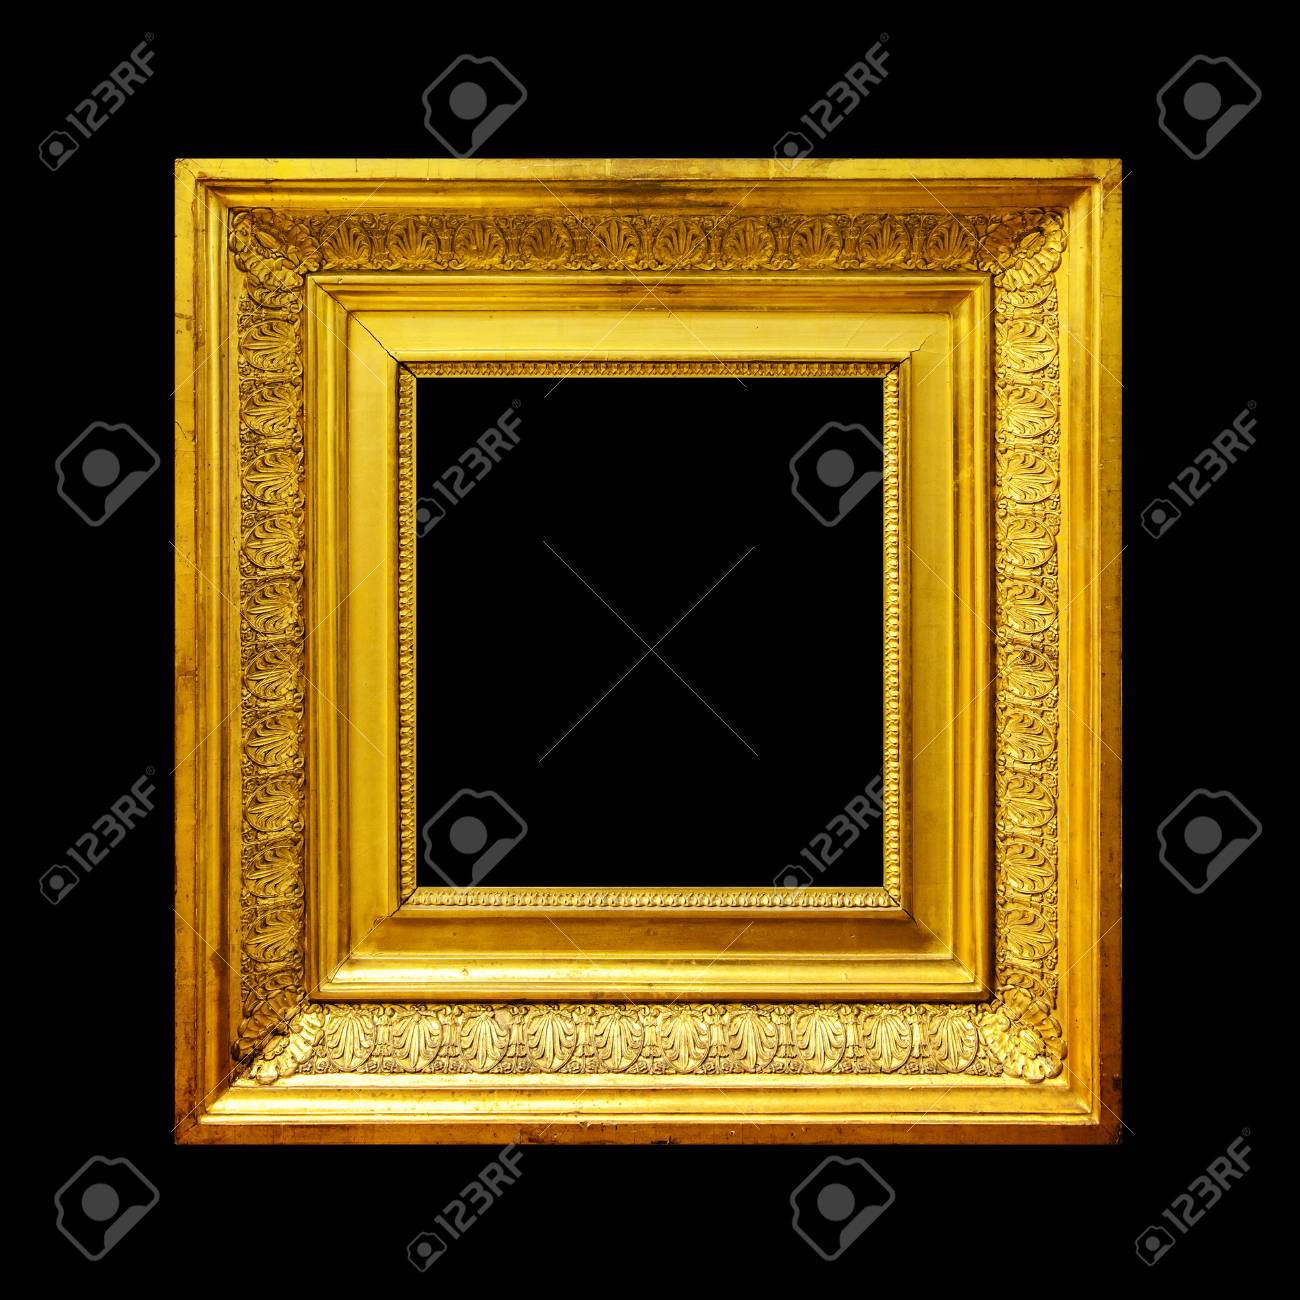 ad61d0605865 Ancient ornate painting frame isolated on black background Stock Photo -  97105080